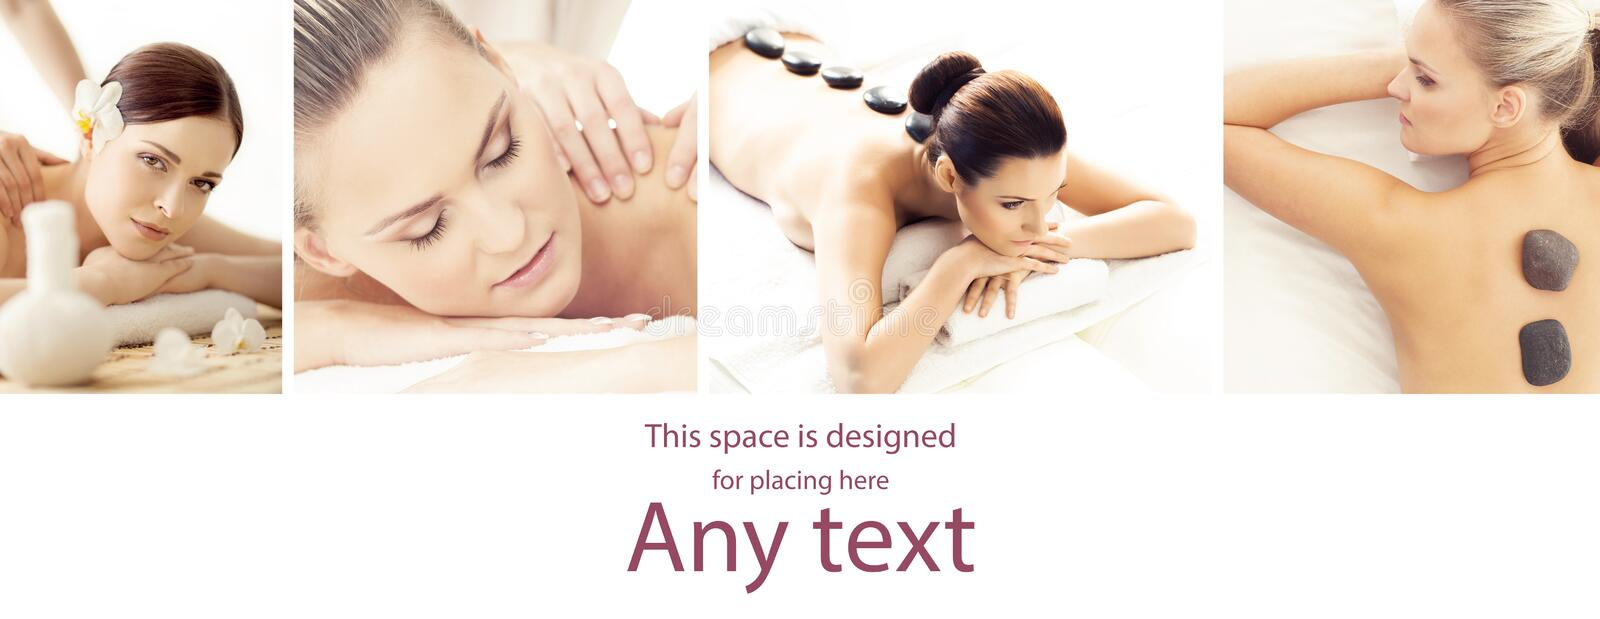 Set with young and beautiful girls relaxing in spa. Woman in mas royalty free stock photo